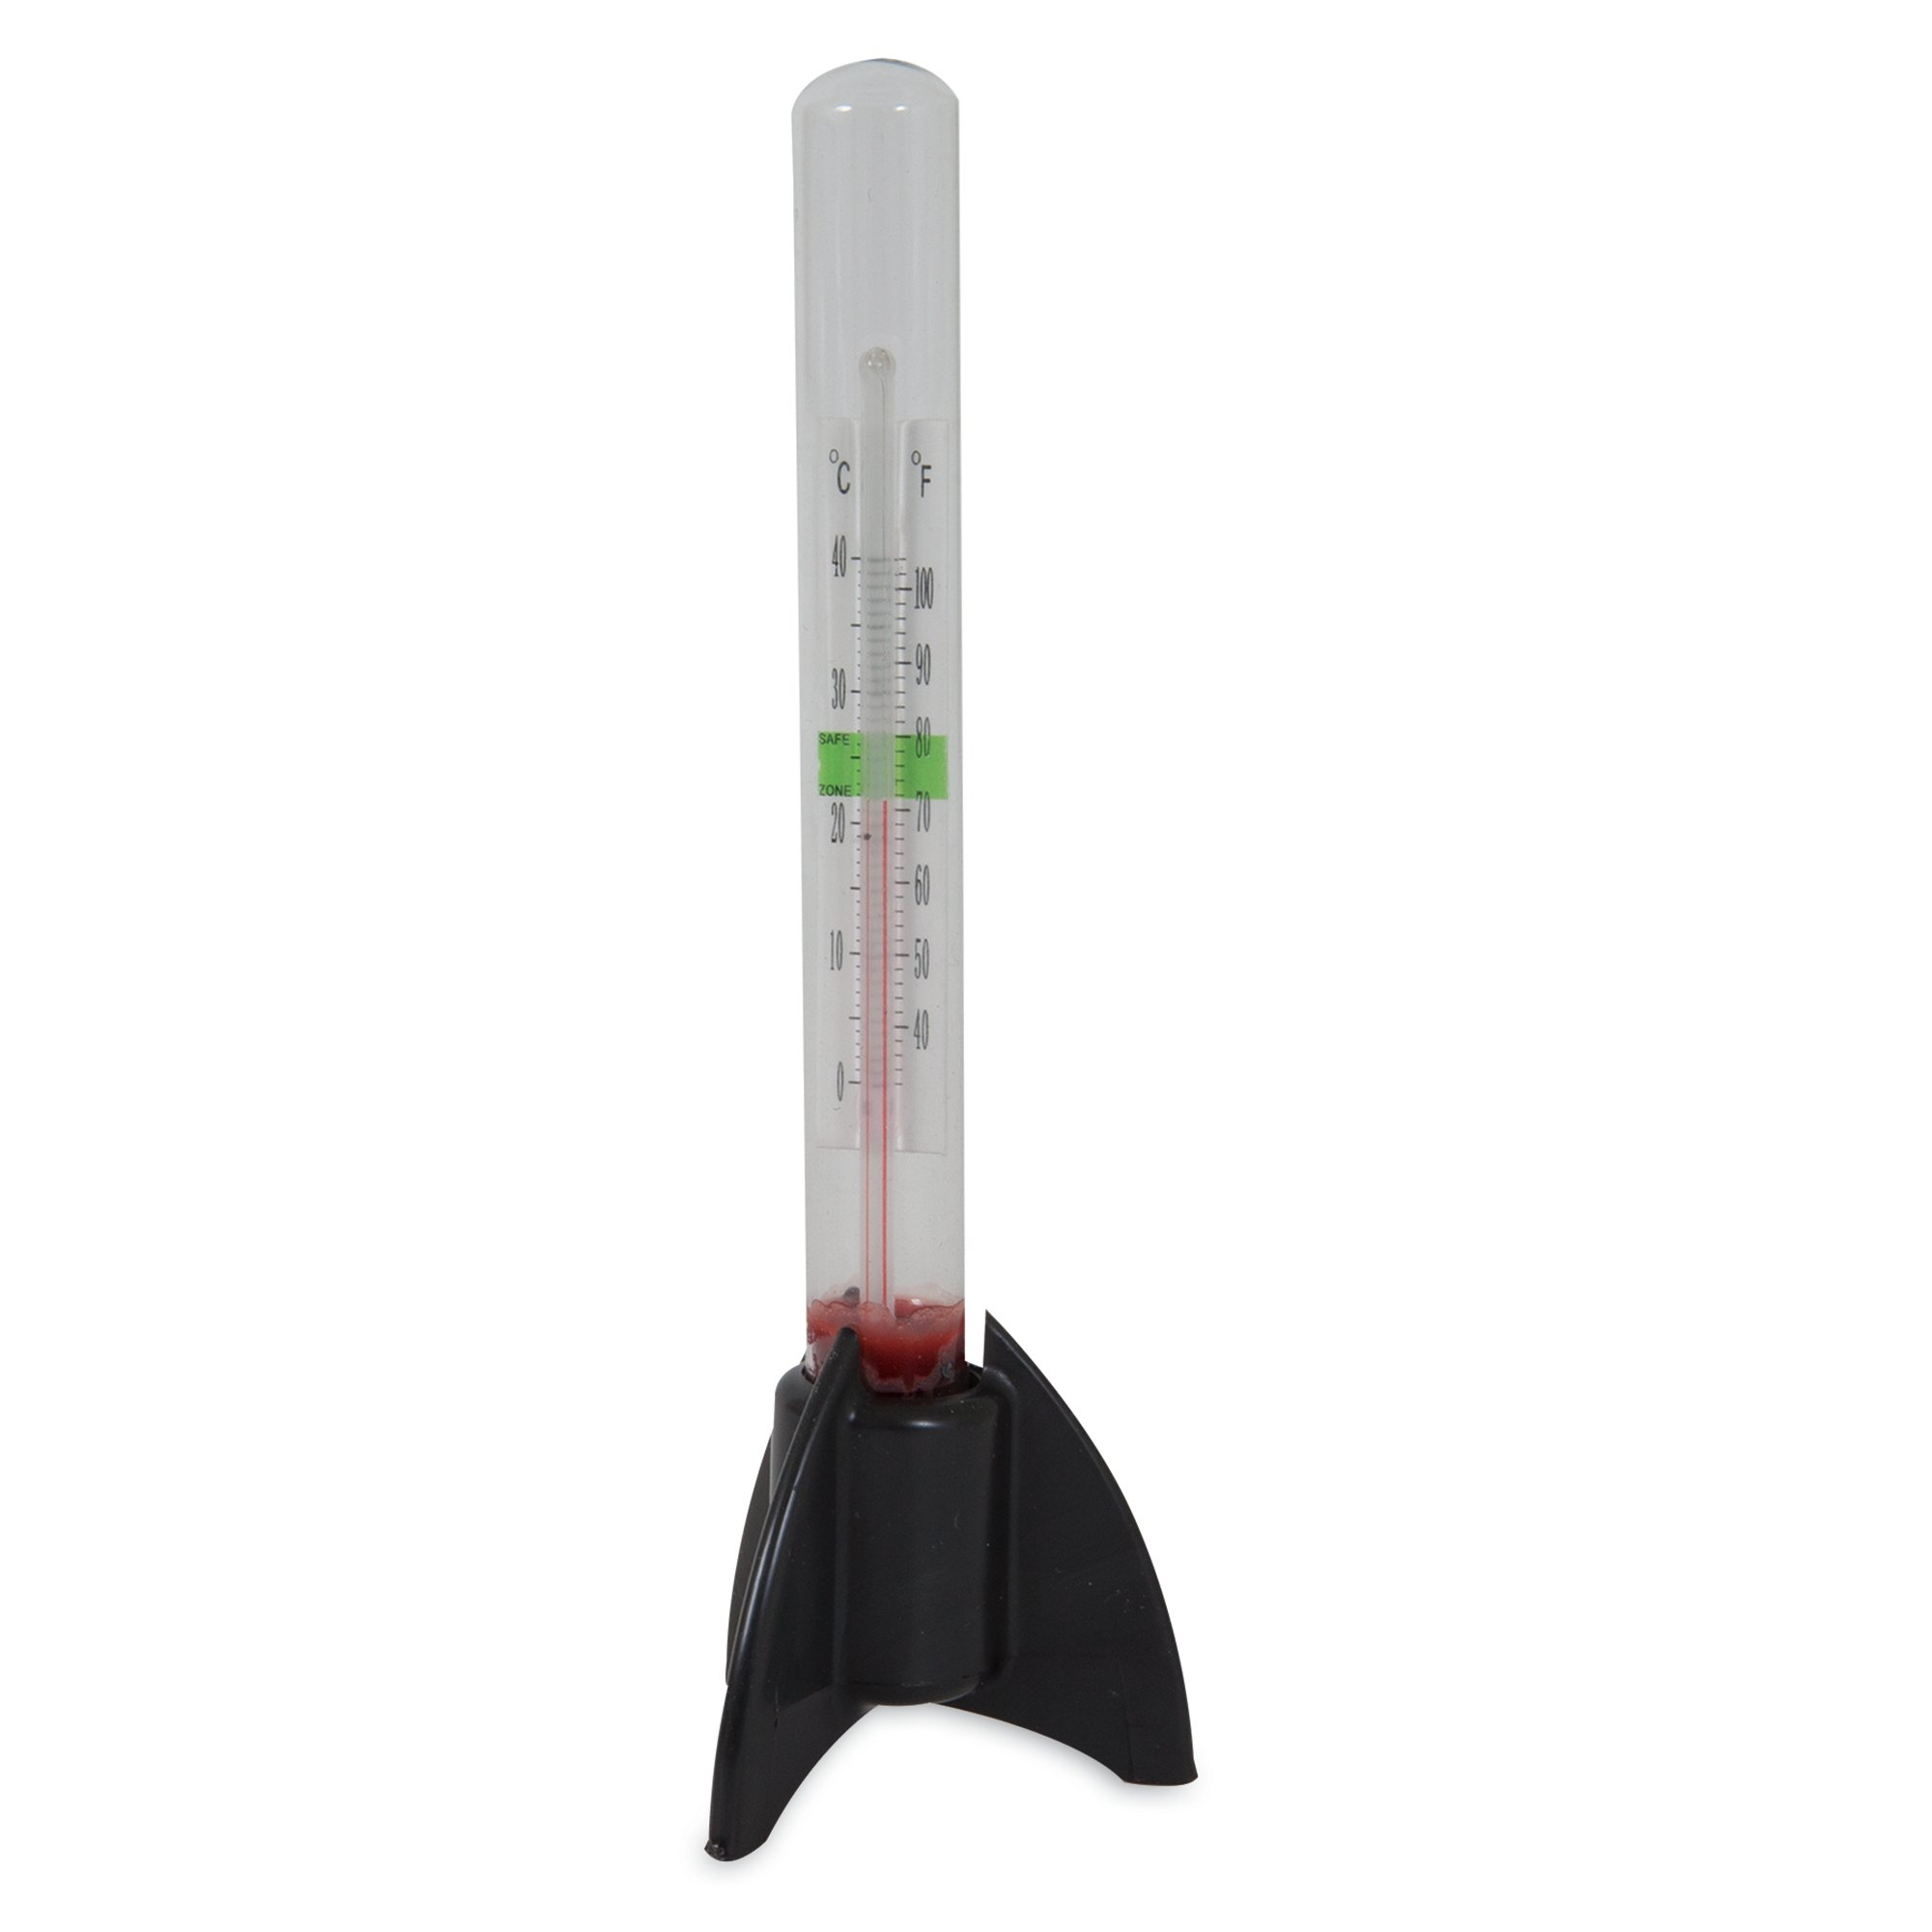 Jw pet stand up smart temperature aquarium thermometer petco for Aquarium thermometer